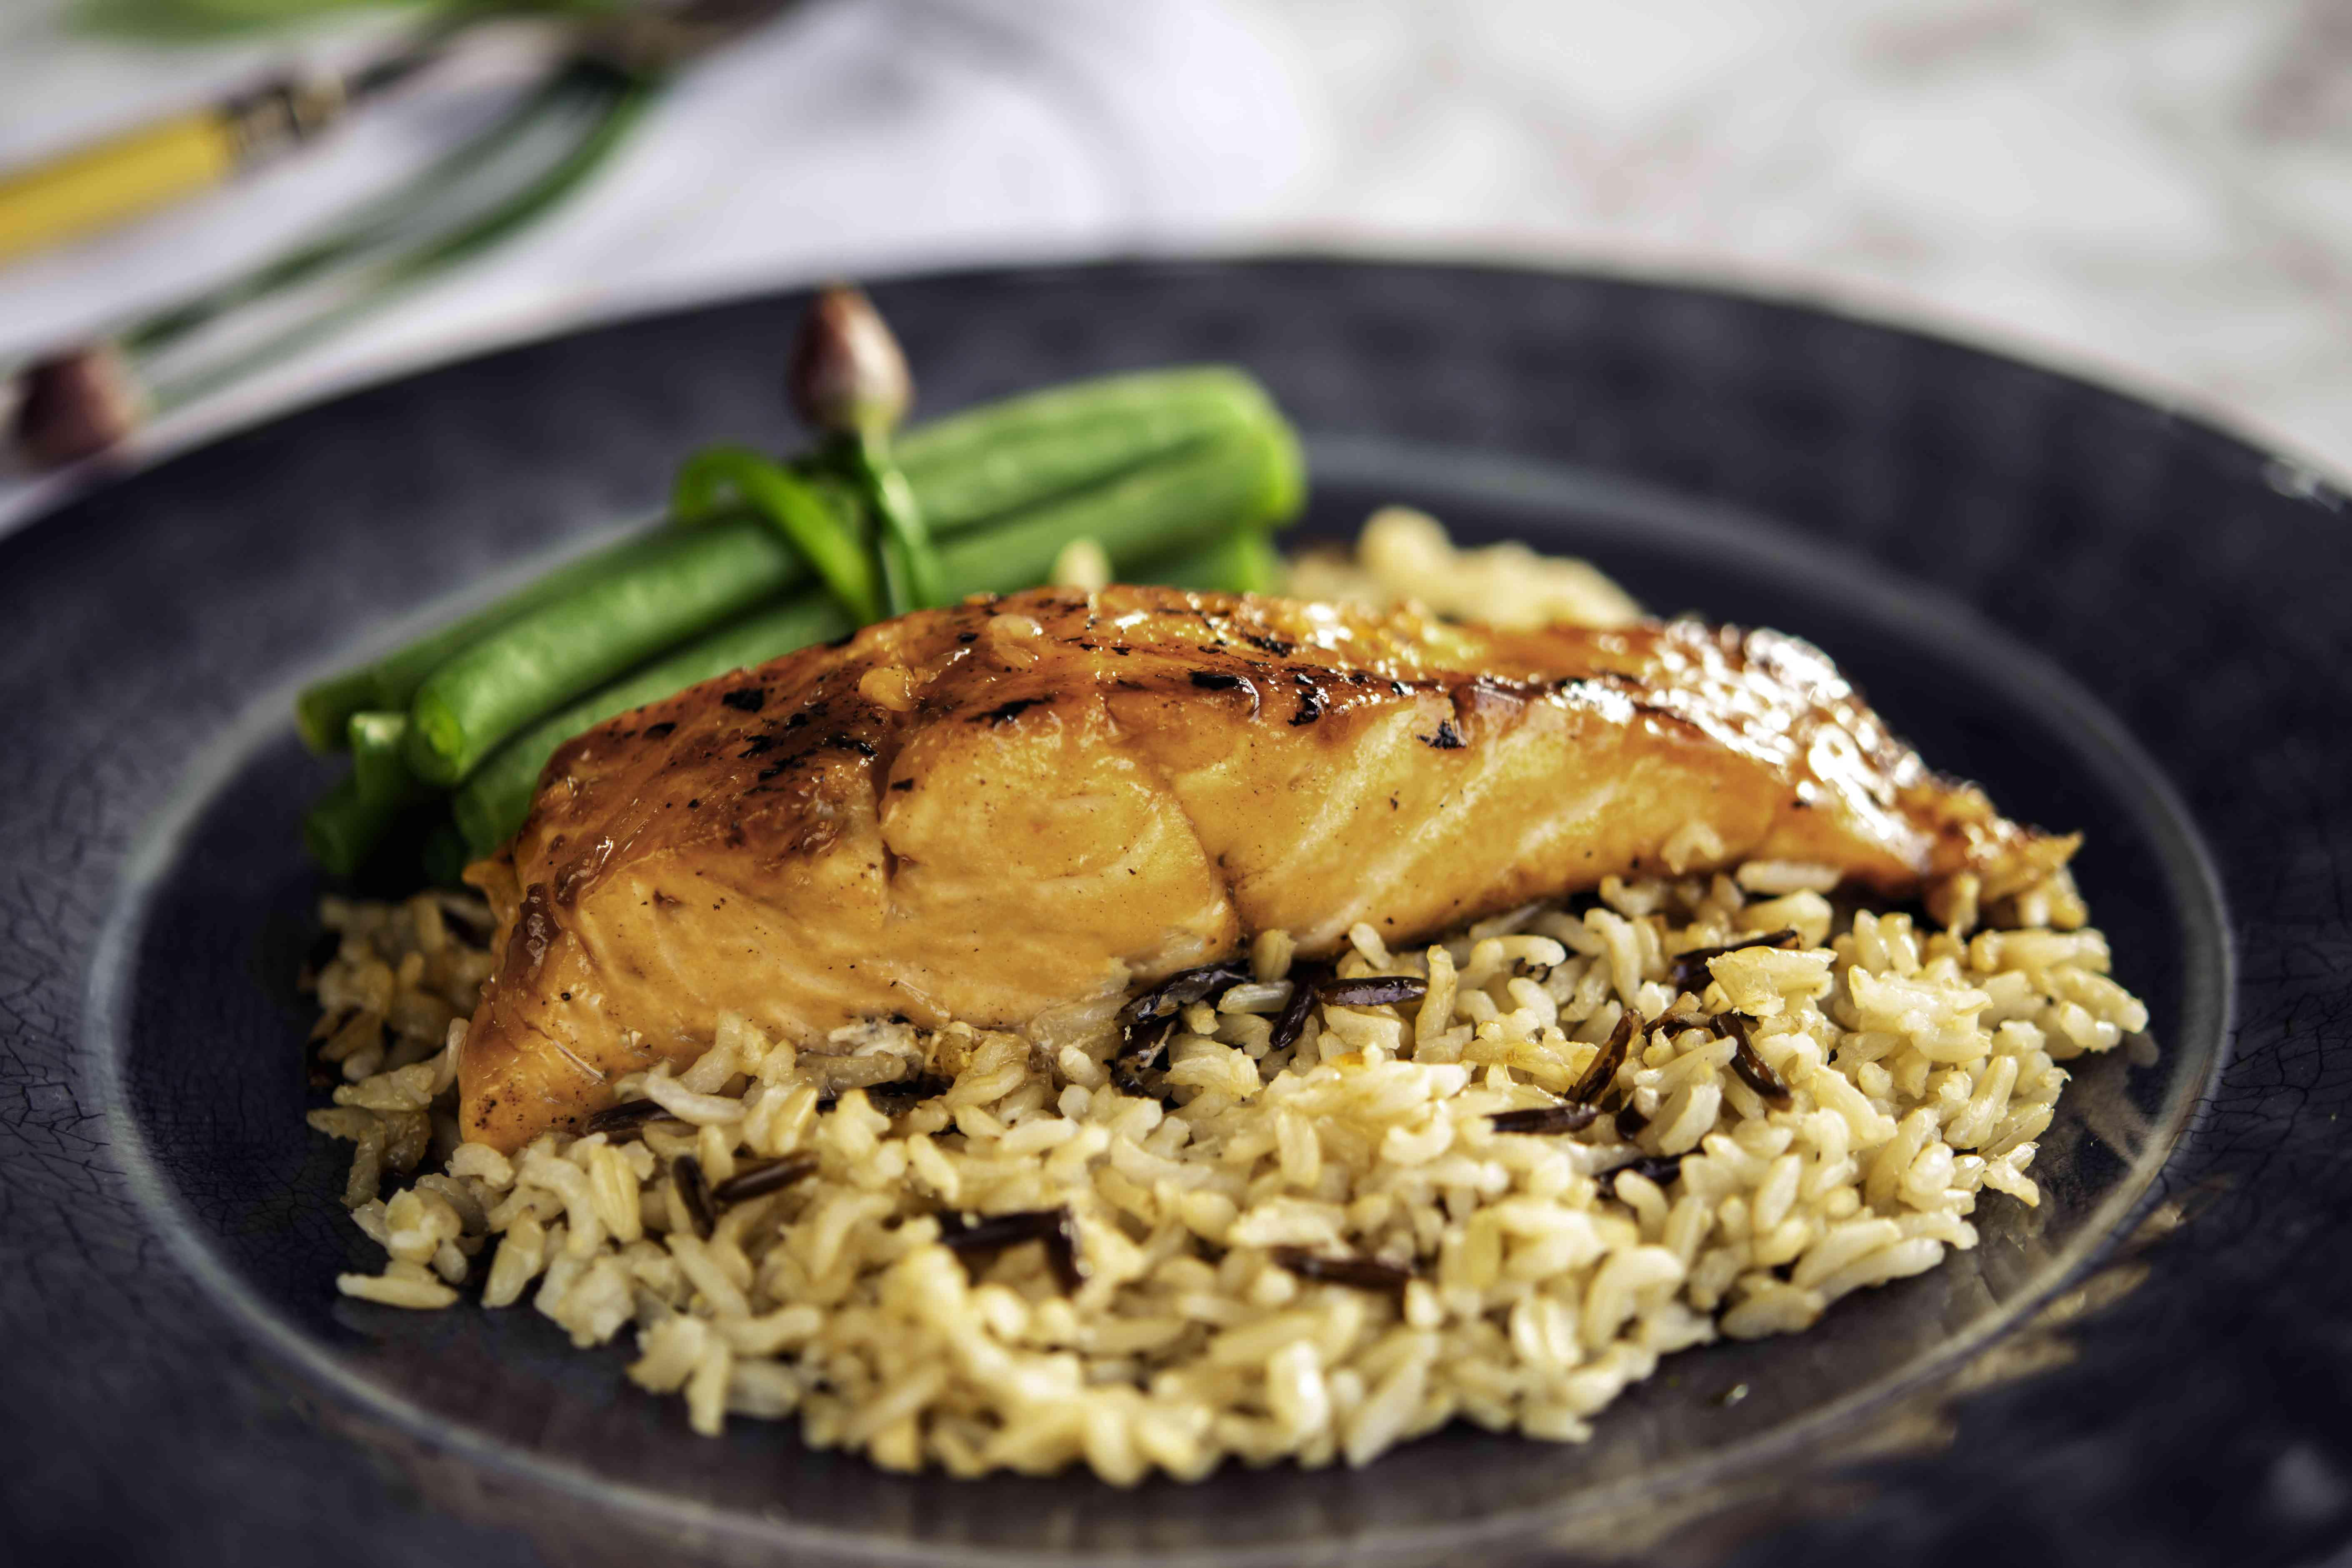 Maple glazed salmon fillet on a bed of wild rice